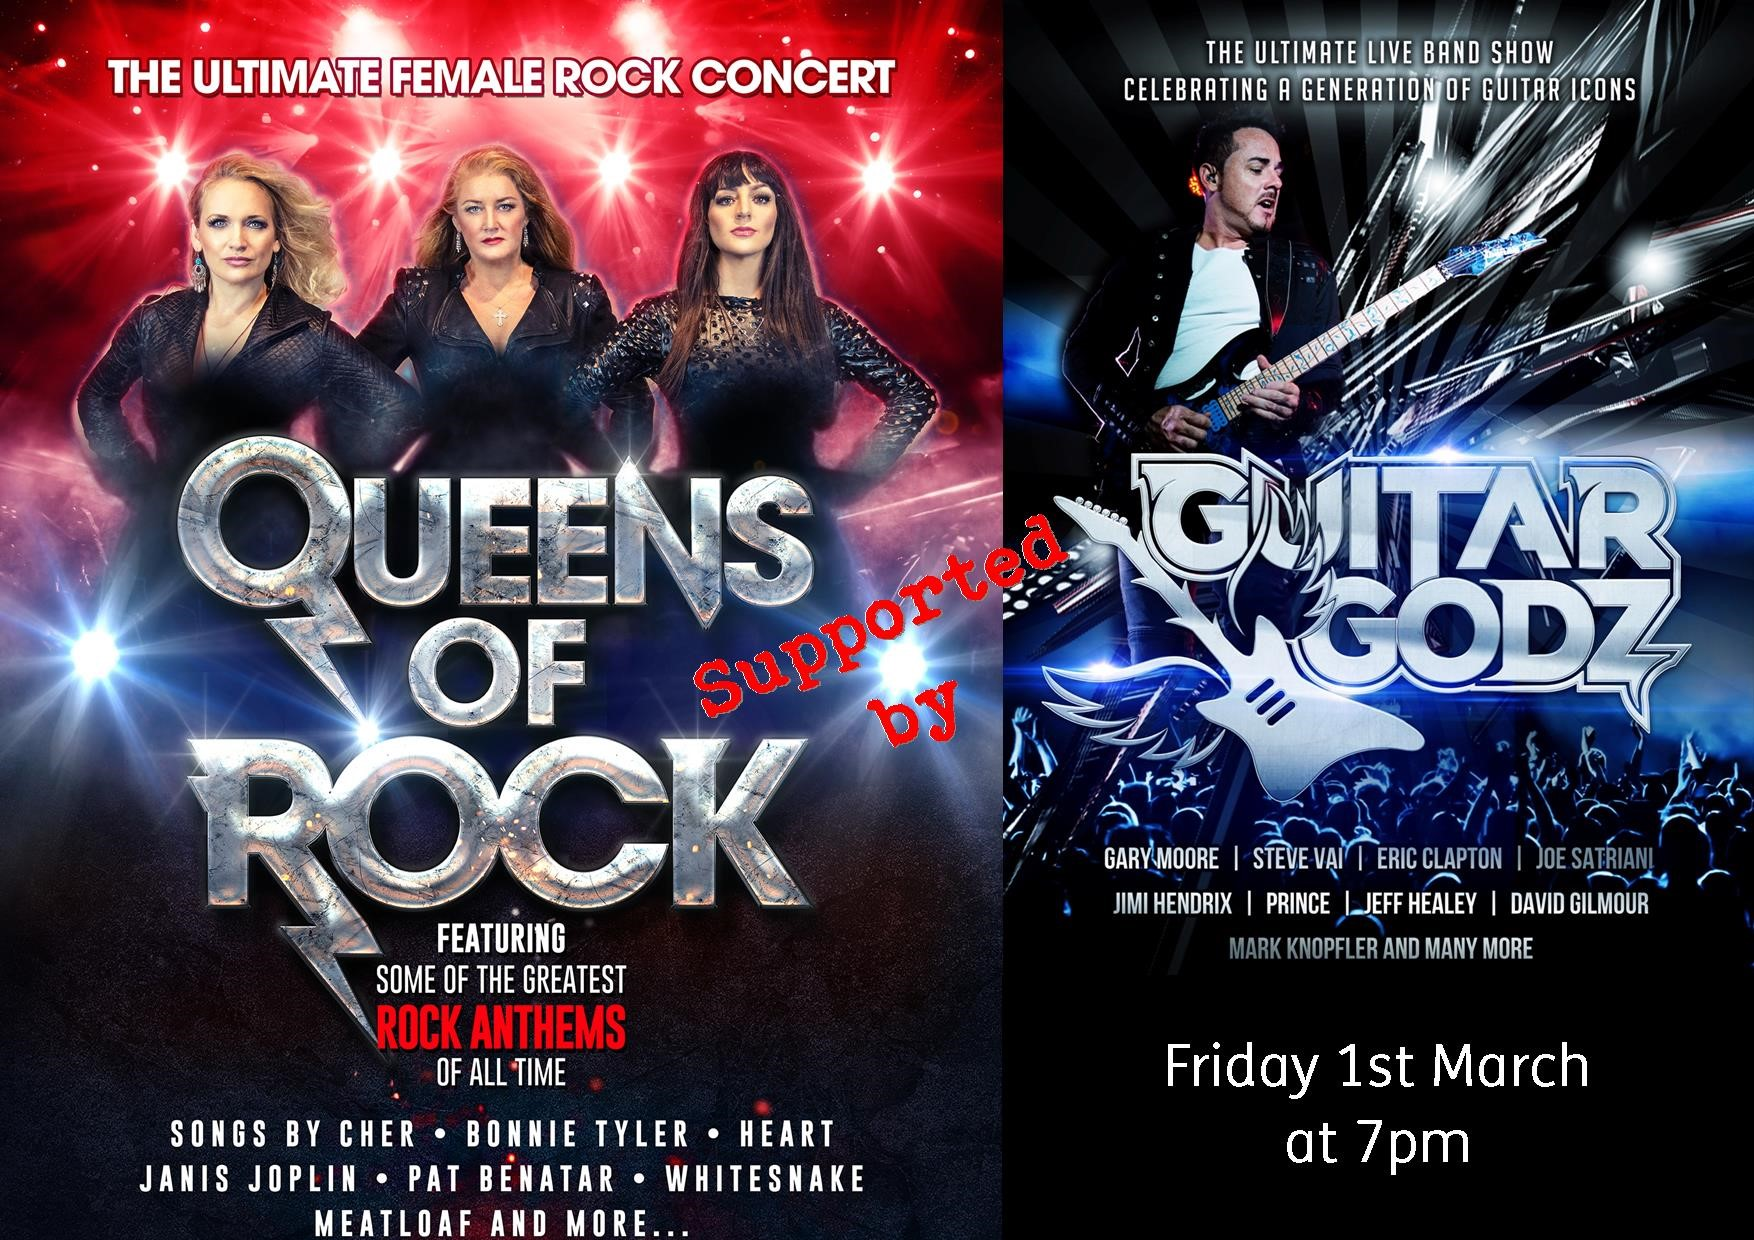 Queens of Rock Supported by Guitar Godz